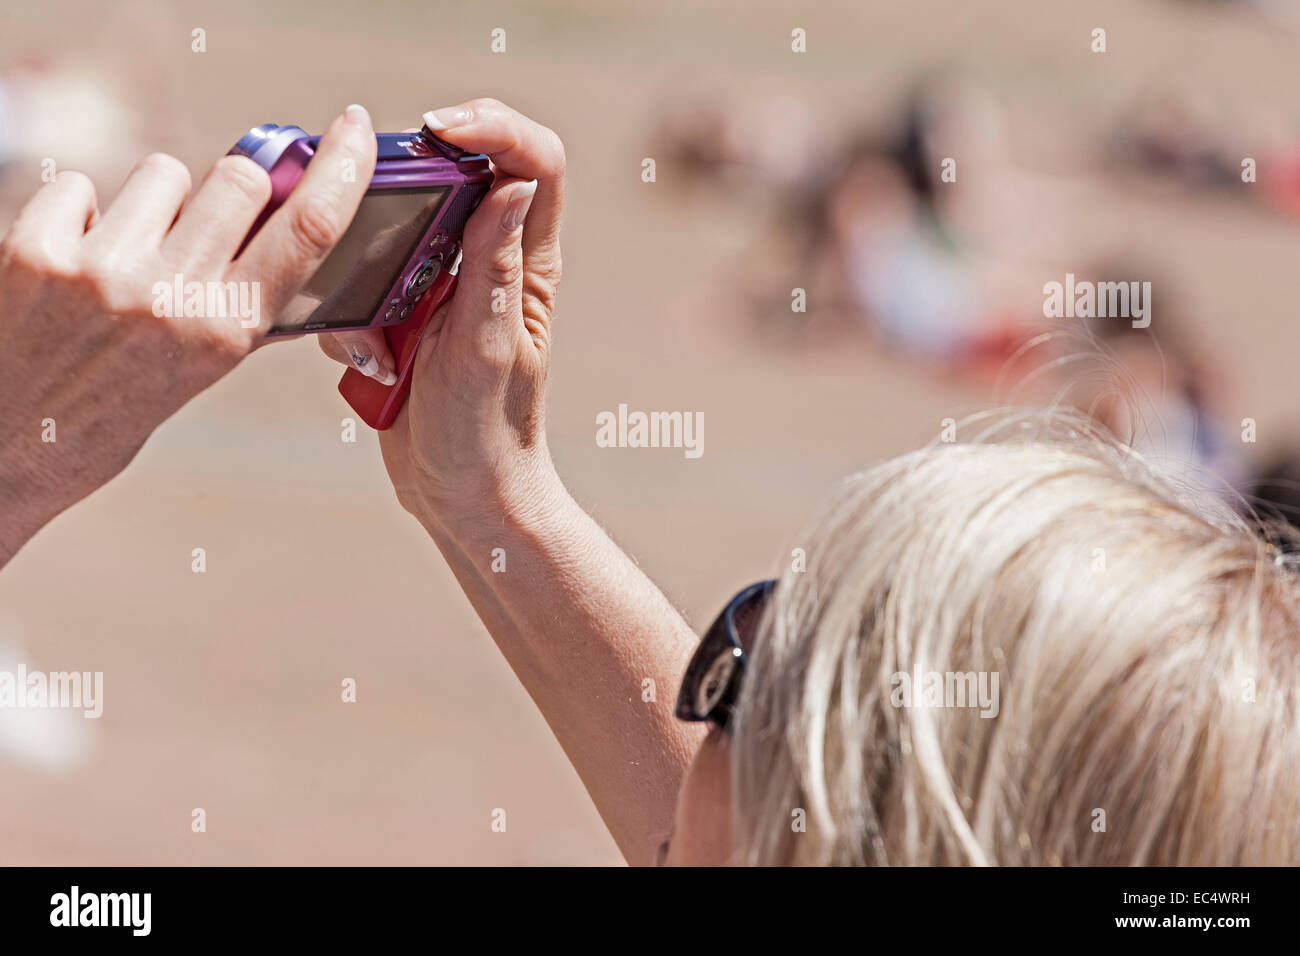 Young woman photographed with her digital camera - Stock Image